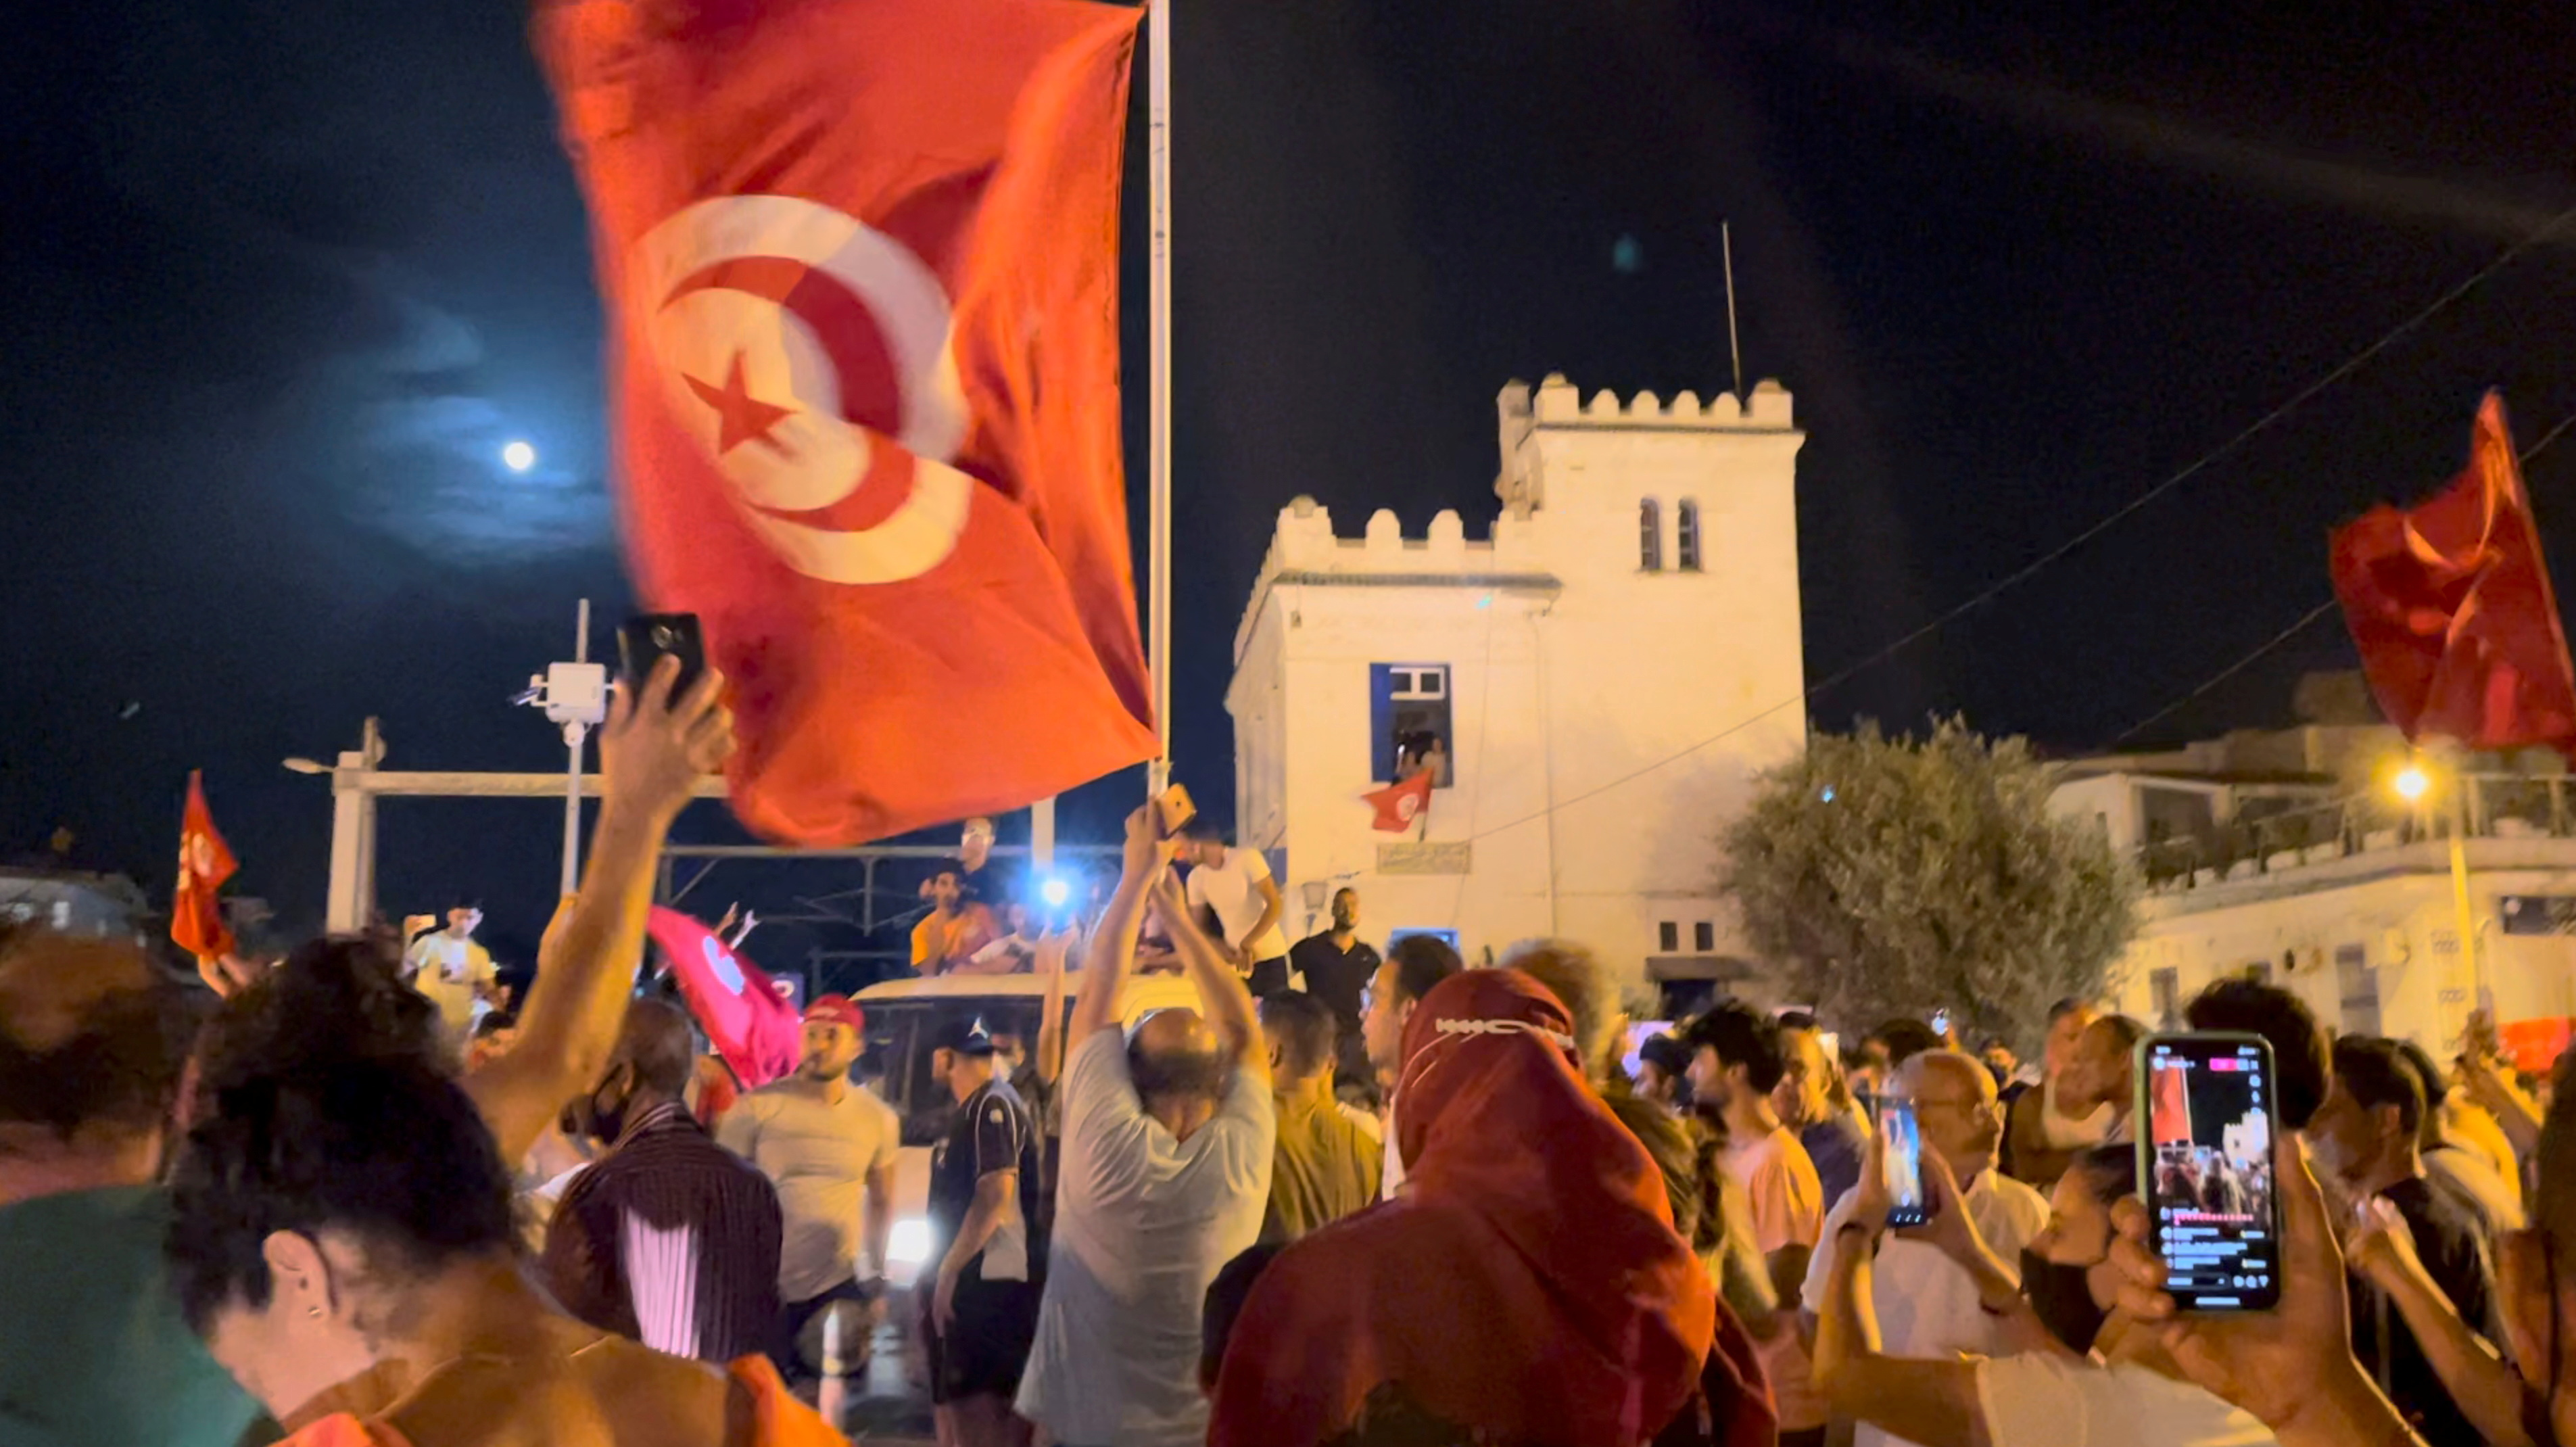 Crowds gather on the street after Tunisia's president suspended parliament, in La Marsa, near Tunis, Tunisia July 26, 2021, in this still image obtained from a social media video. Layli Foroudi/via REUTERS